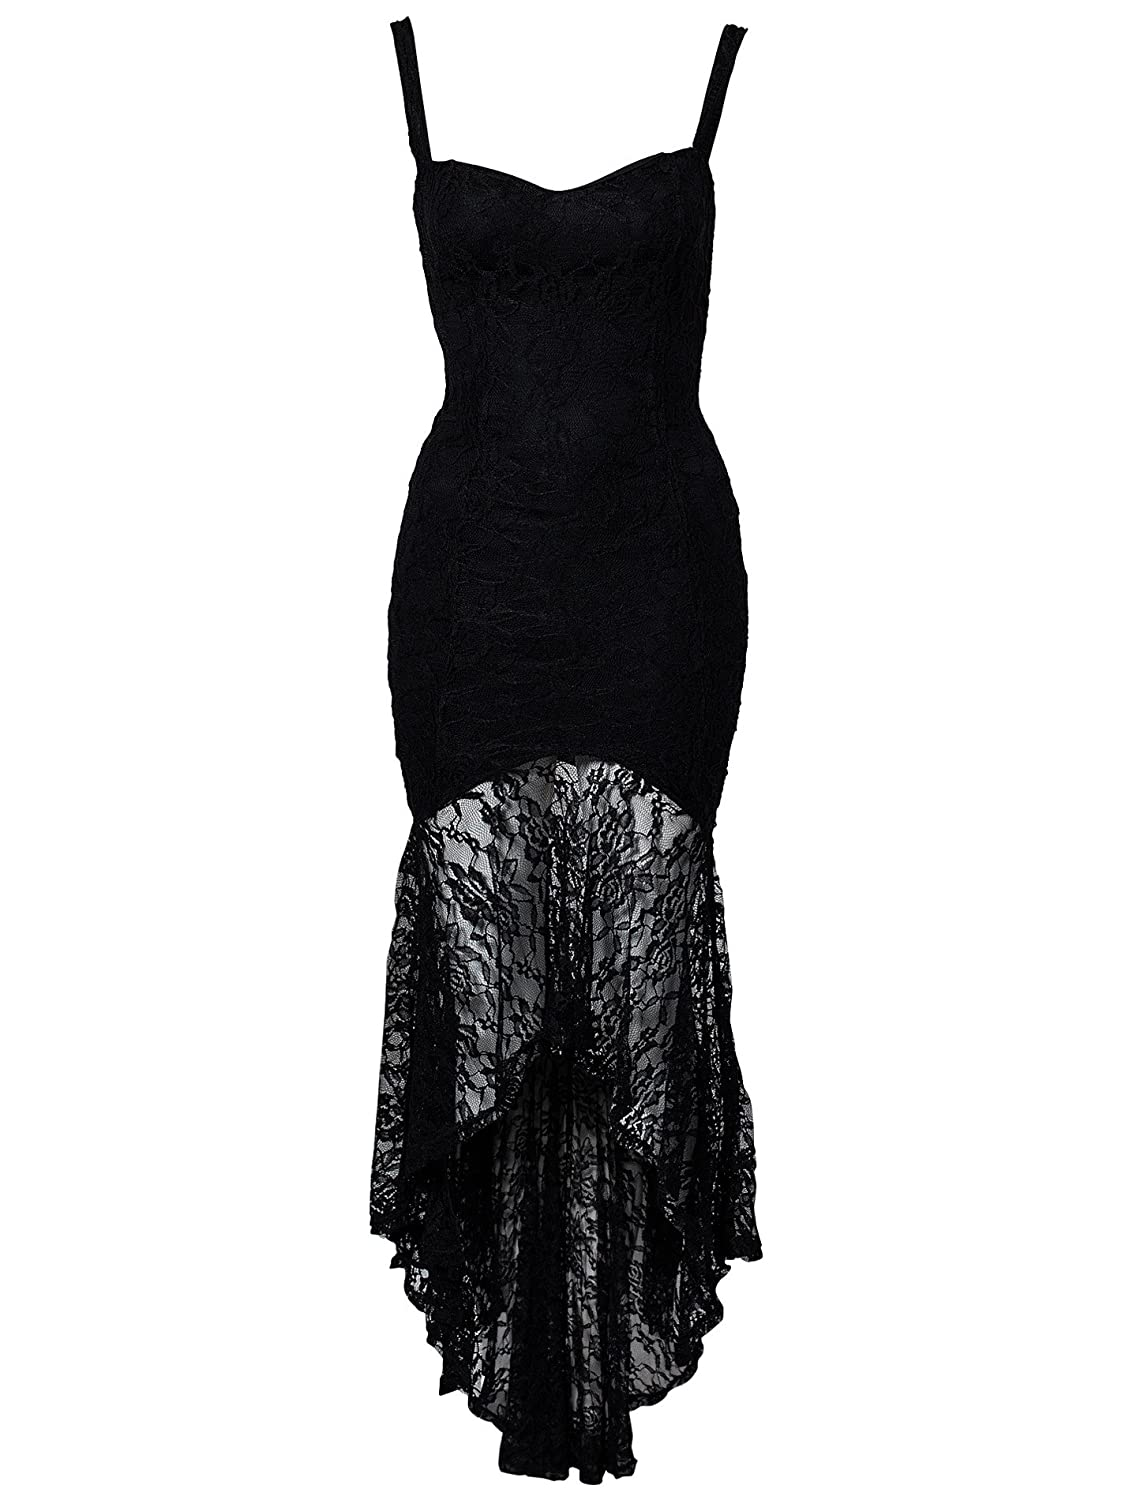 Amazon.com: made2envy Lace Overlay Fishtail Dress (L, Black) 7978BL: Clothing